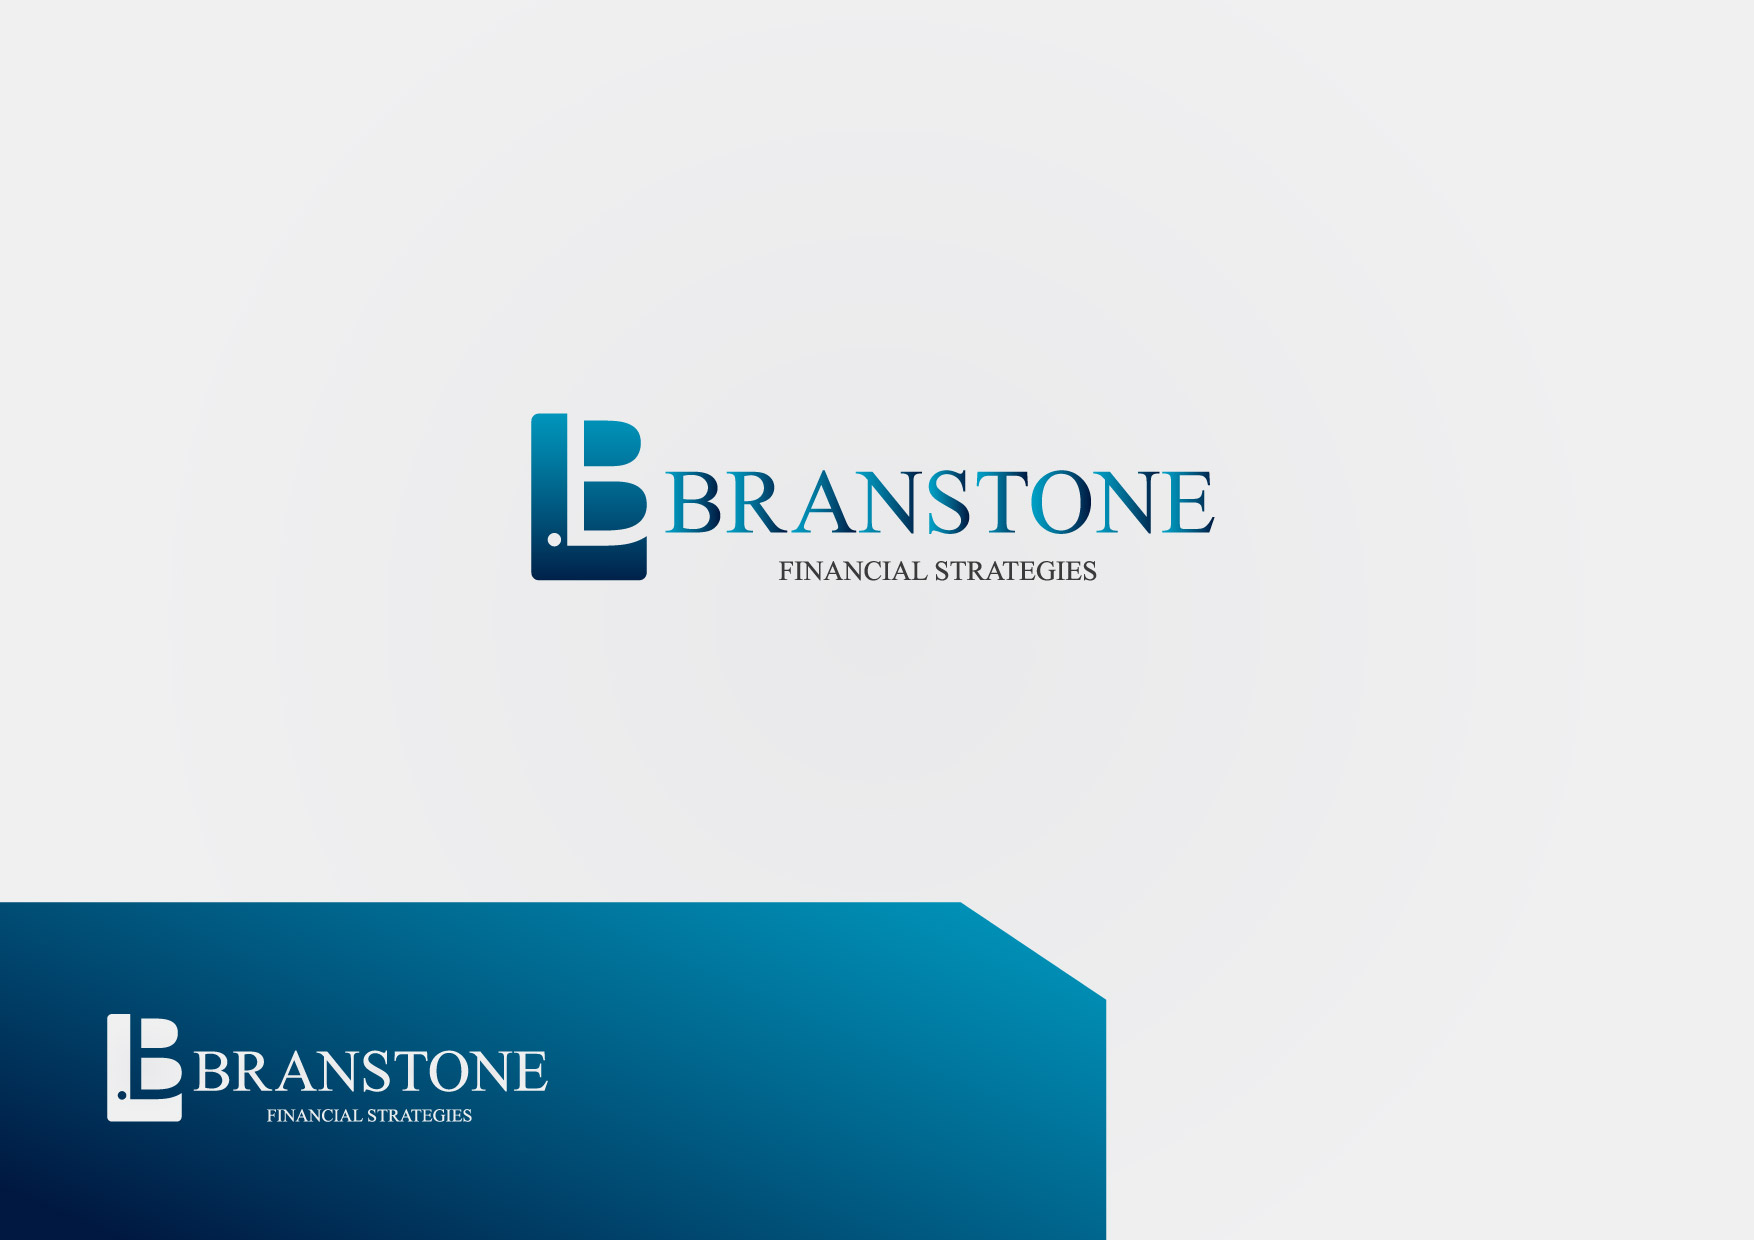 Logo Design by Osi Indra - Entry No. 92 in the Logo Design Contest Inspiring Logo Design for Branstone Financial Strategies.